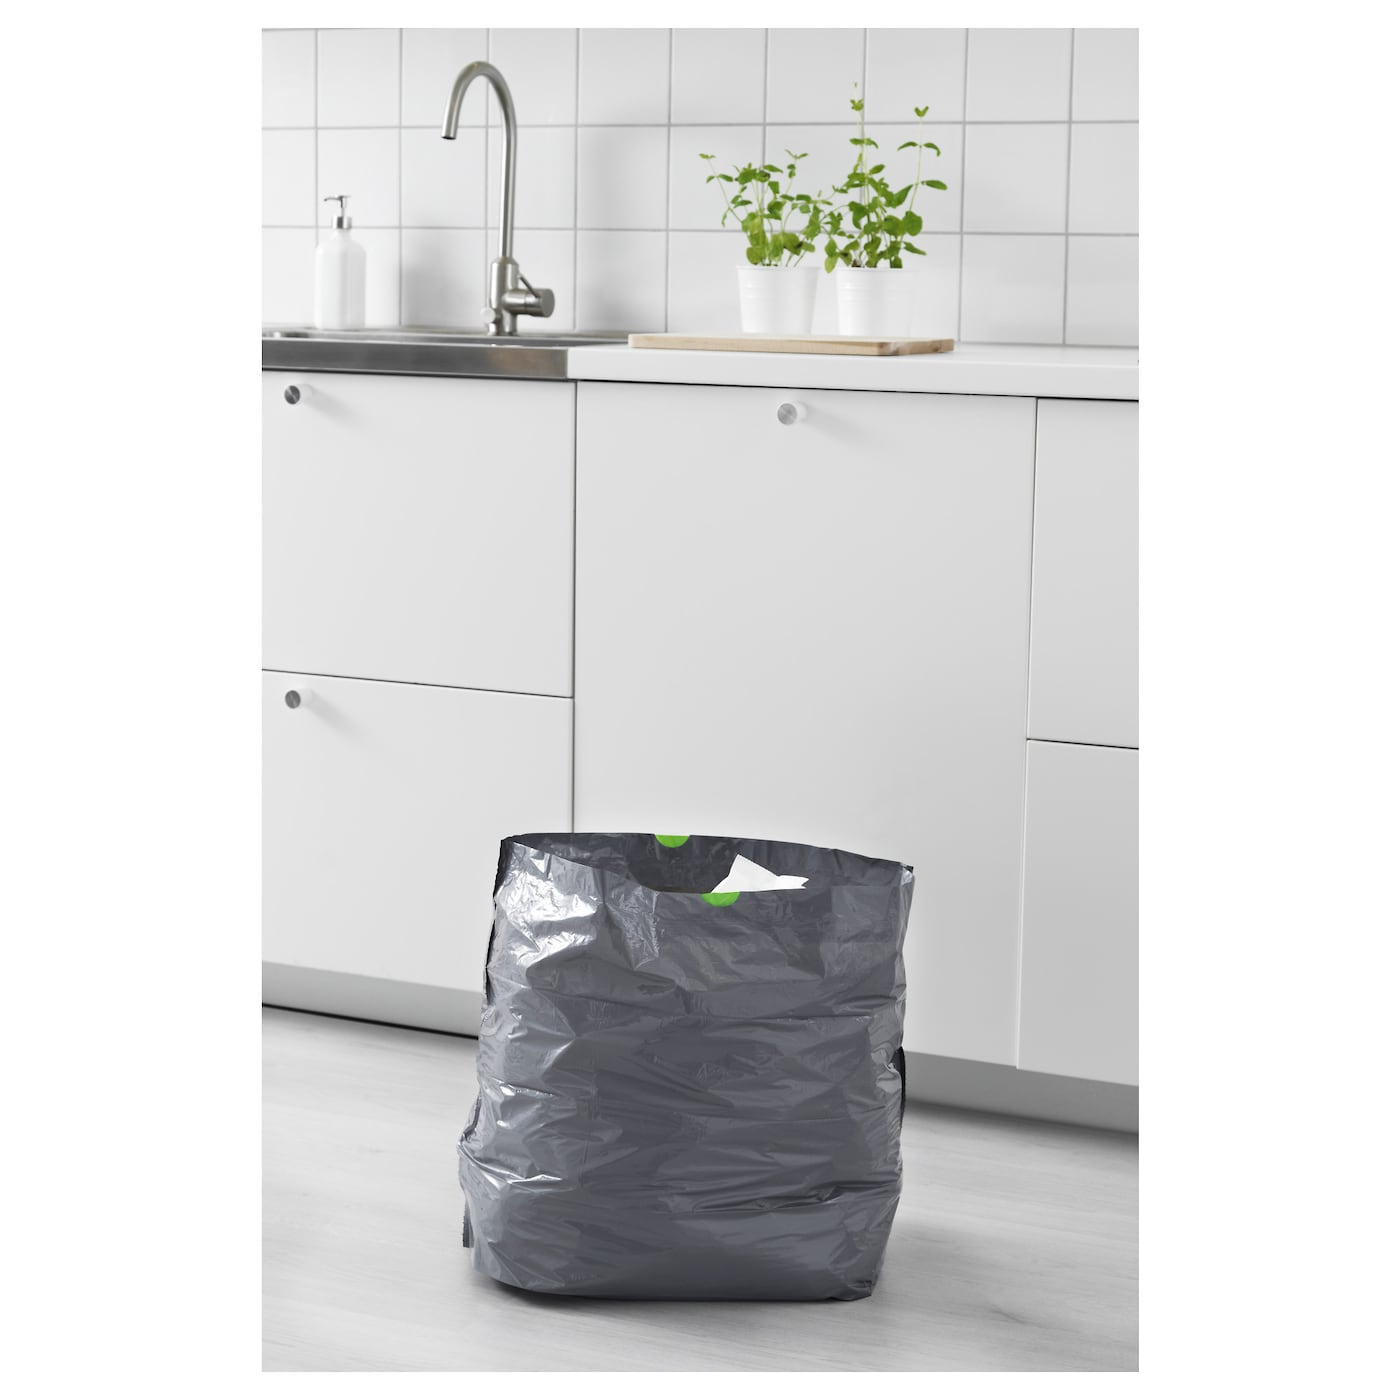 IKEA FÖRSLUTAS waste bag The handle makes it easy to close the bag and carry it to throw away.